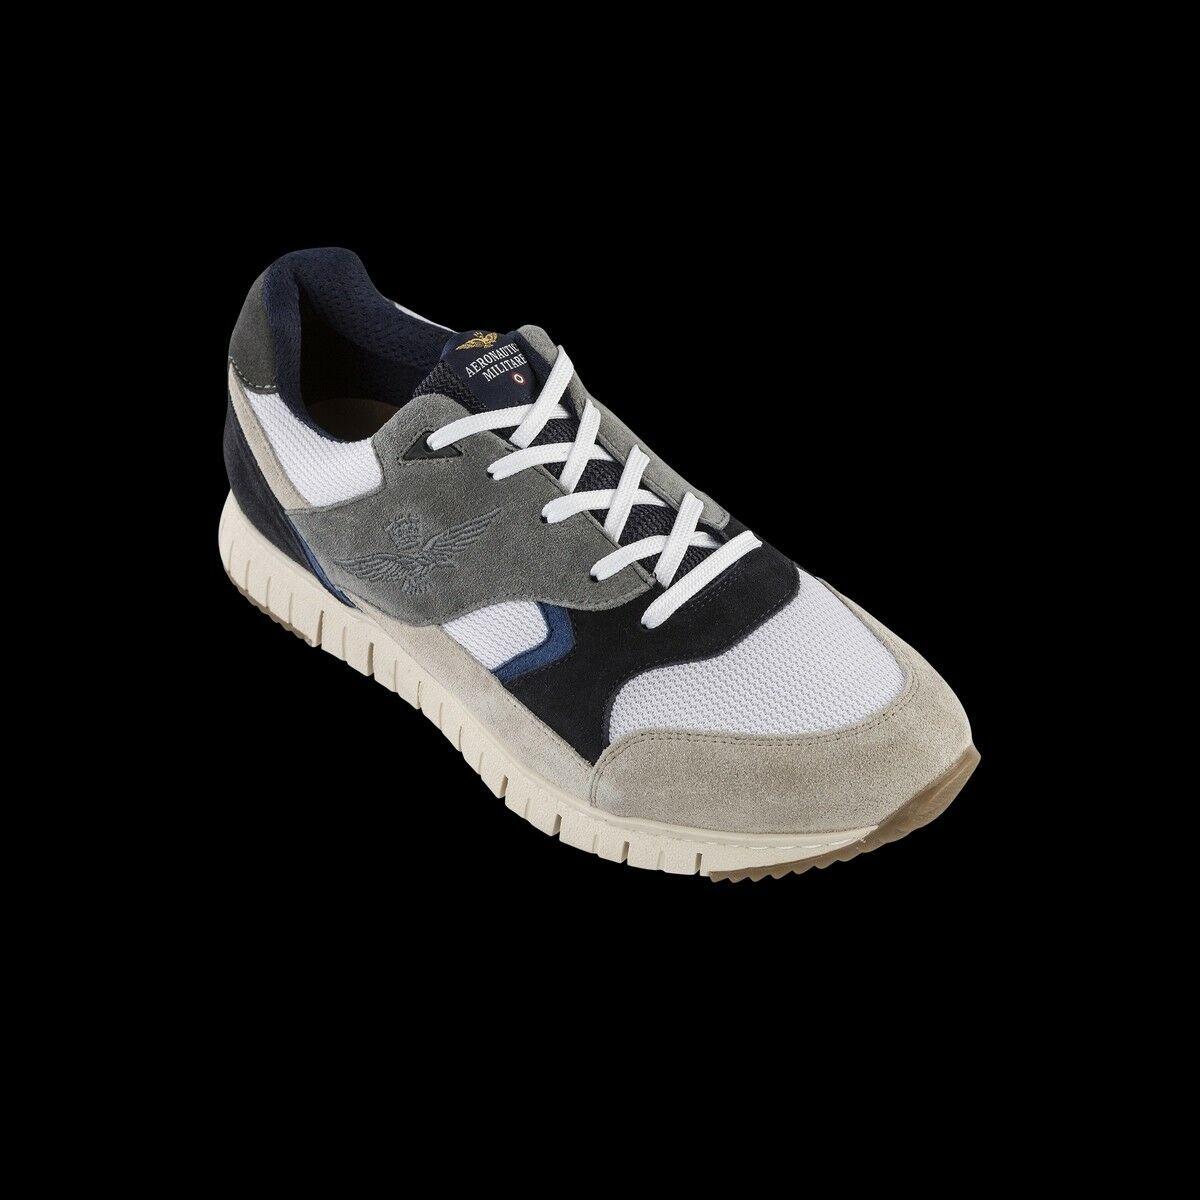 shoes Aeronautica Militare men Running - Bianco grey - CT2257